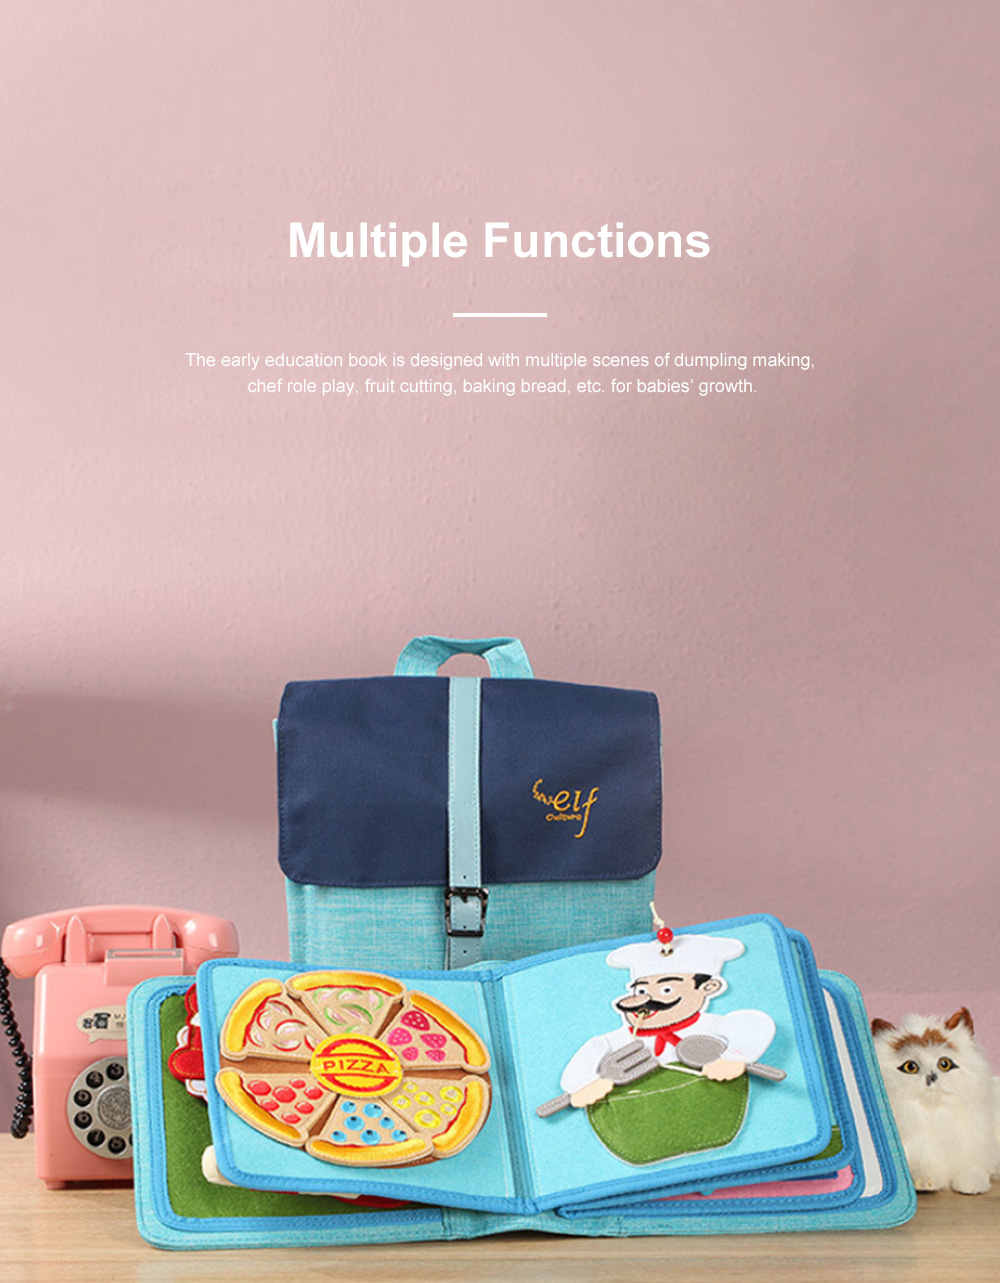 Elf-culture Food Cloth Book for Early Education Not Tearable Infant Toddler's Cloth Book Colorful Simple Cloth Book 2